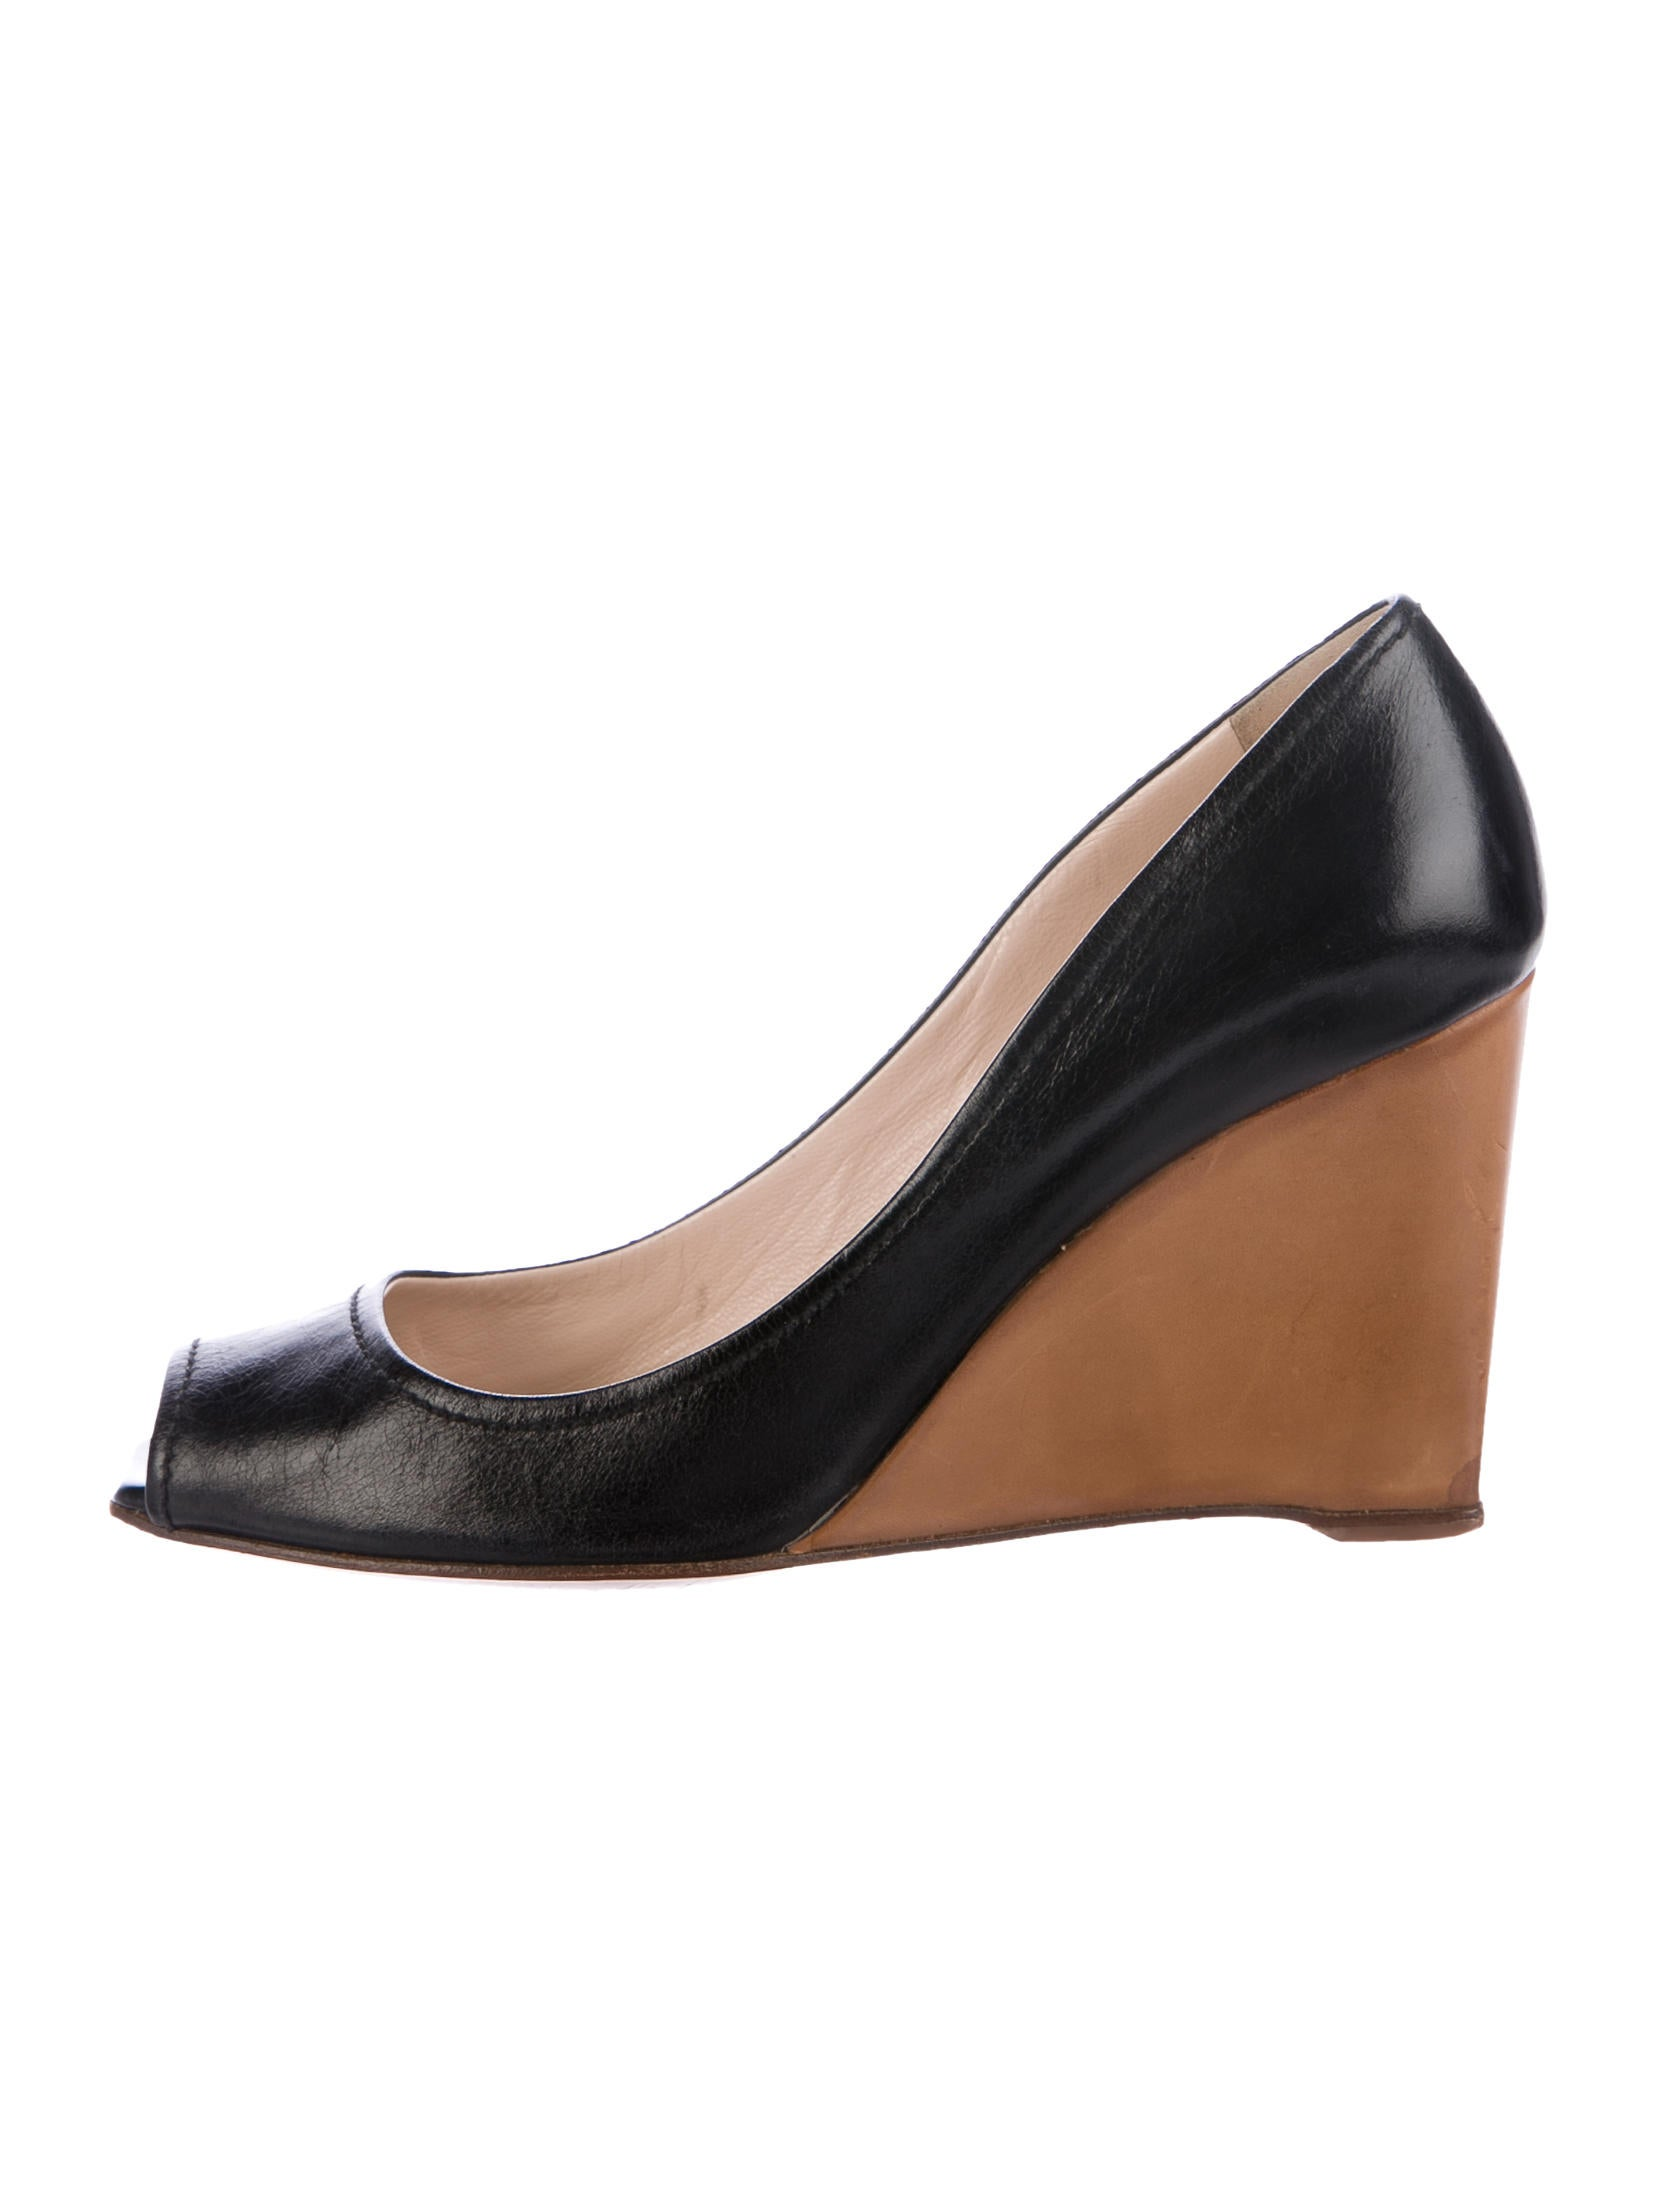 prada peep toe wedge pumps shoes pra163798 the realreal